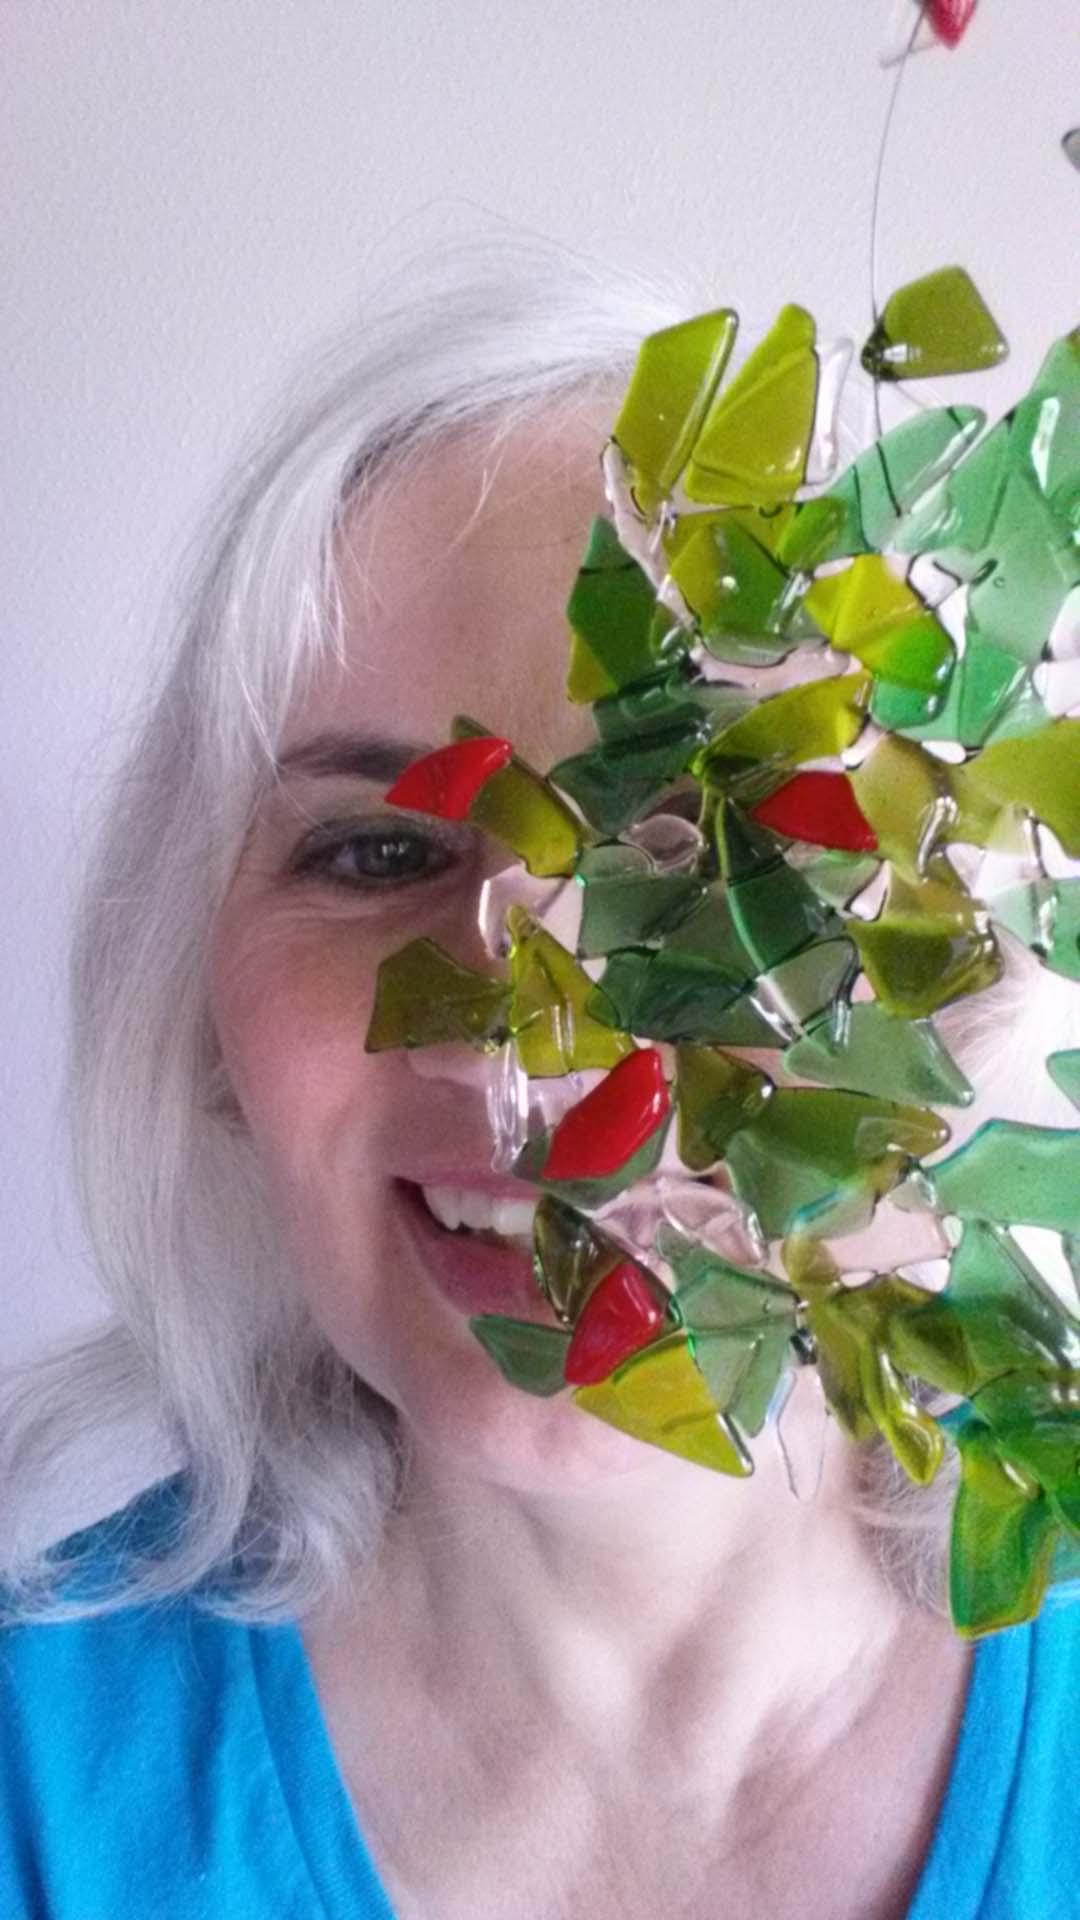 Selfie with a glass tree